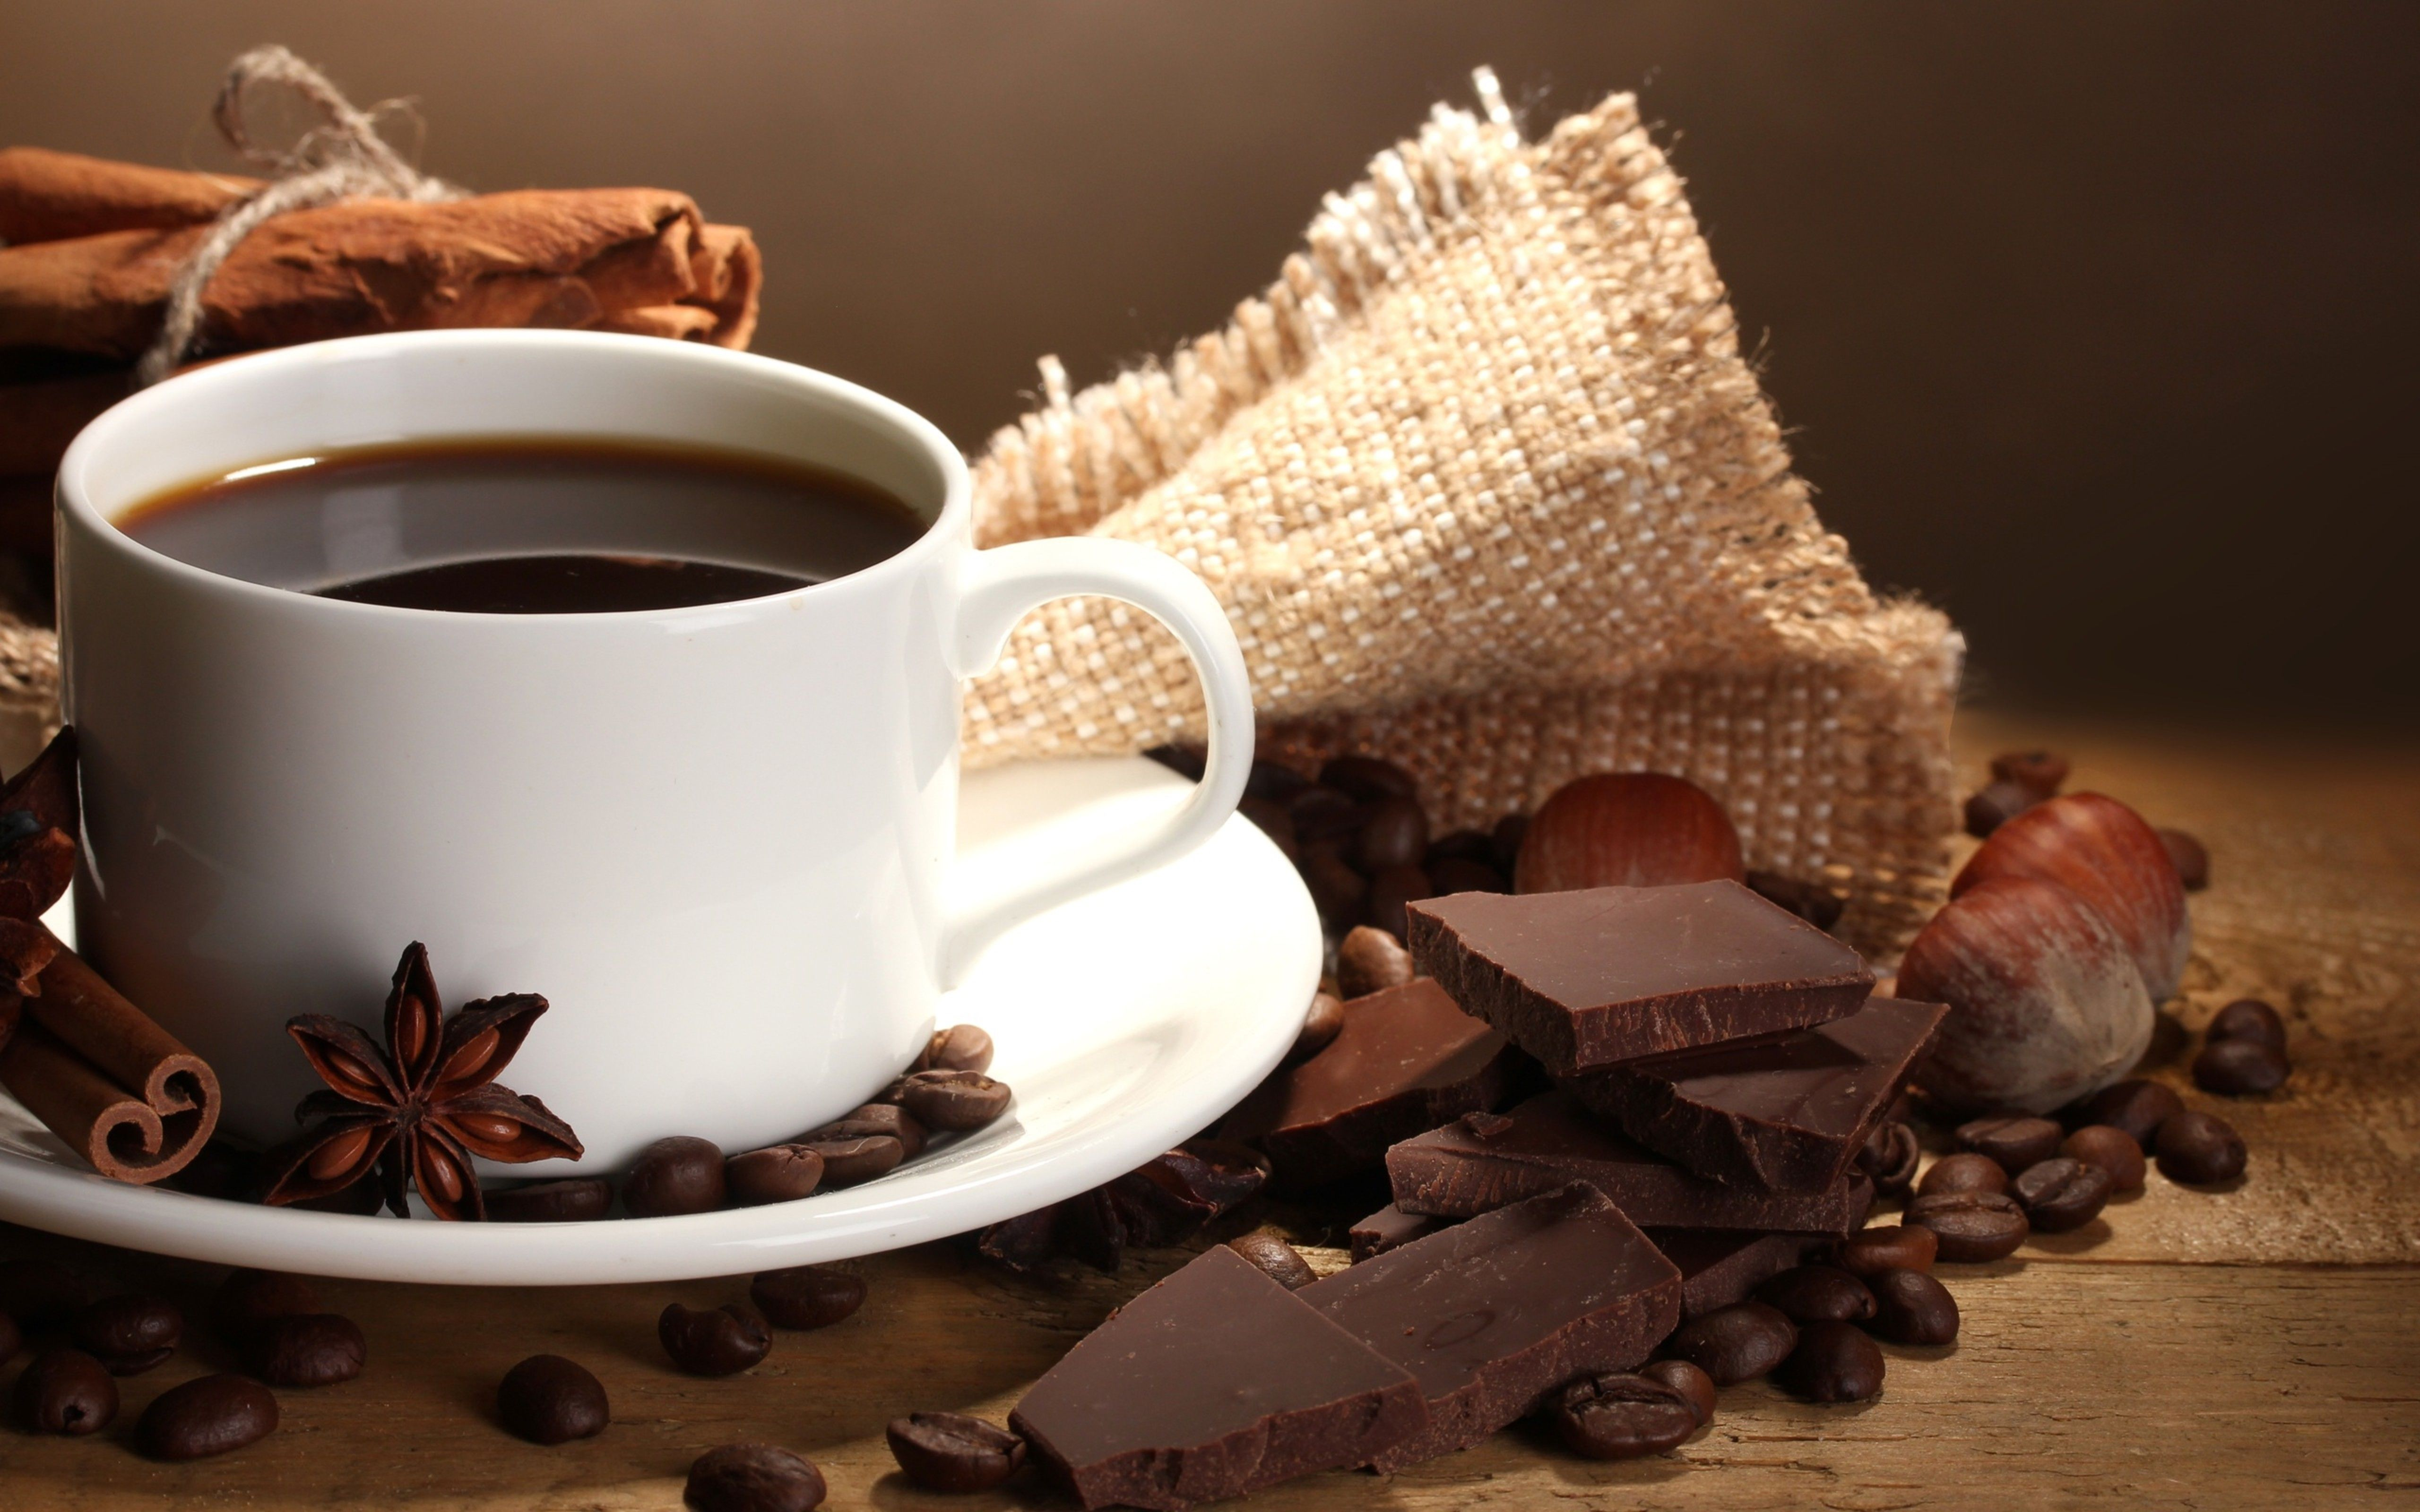 Wallpaper Download 5120x3200 Good Morning Coffee And Chocolate Food And Cooking Delicious W Good Morning Coffee Images Good Morning Coffee Coffee Wallpaper